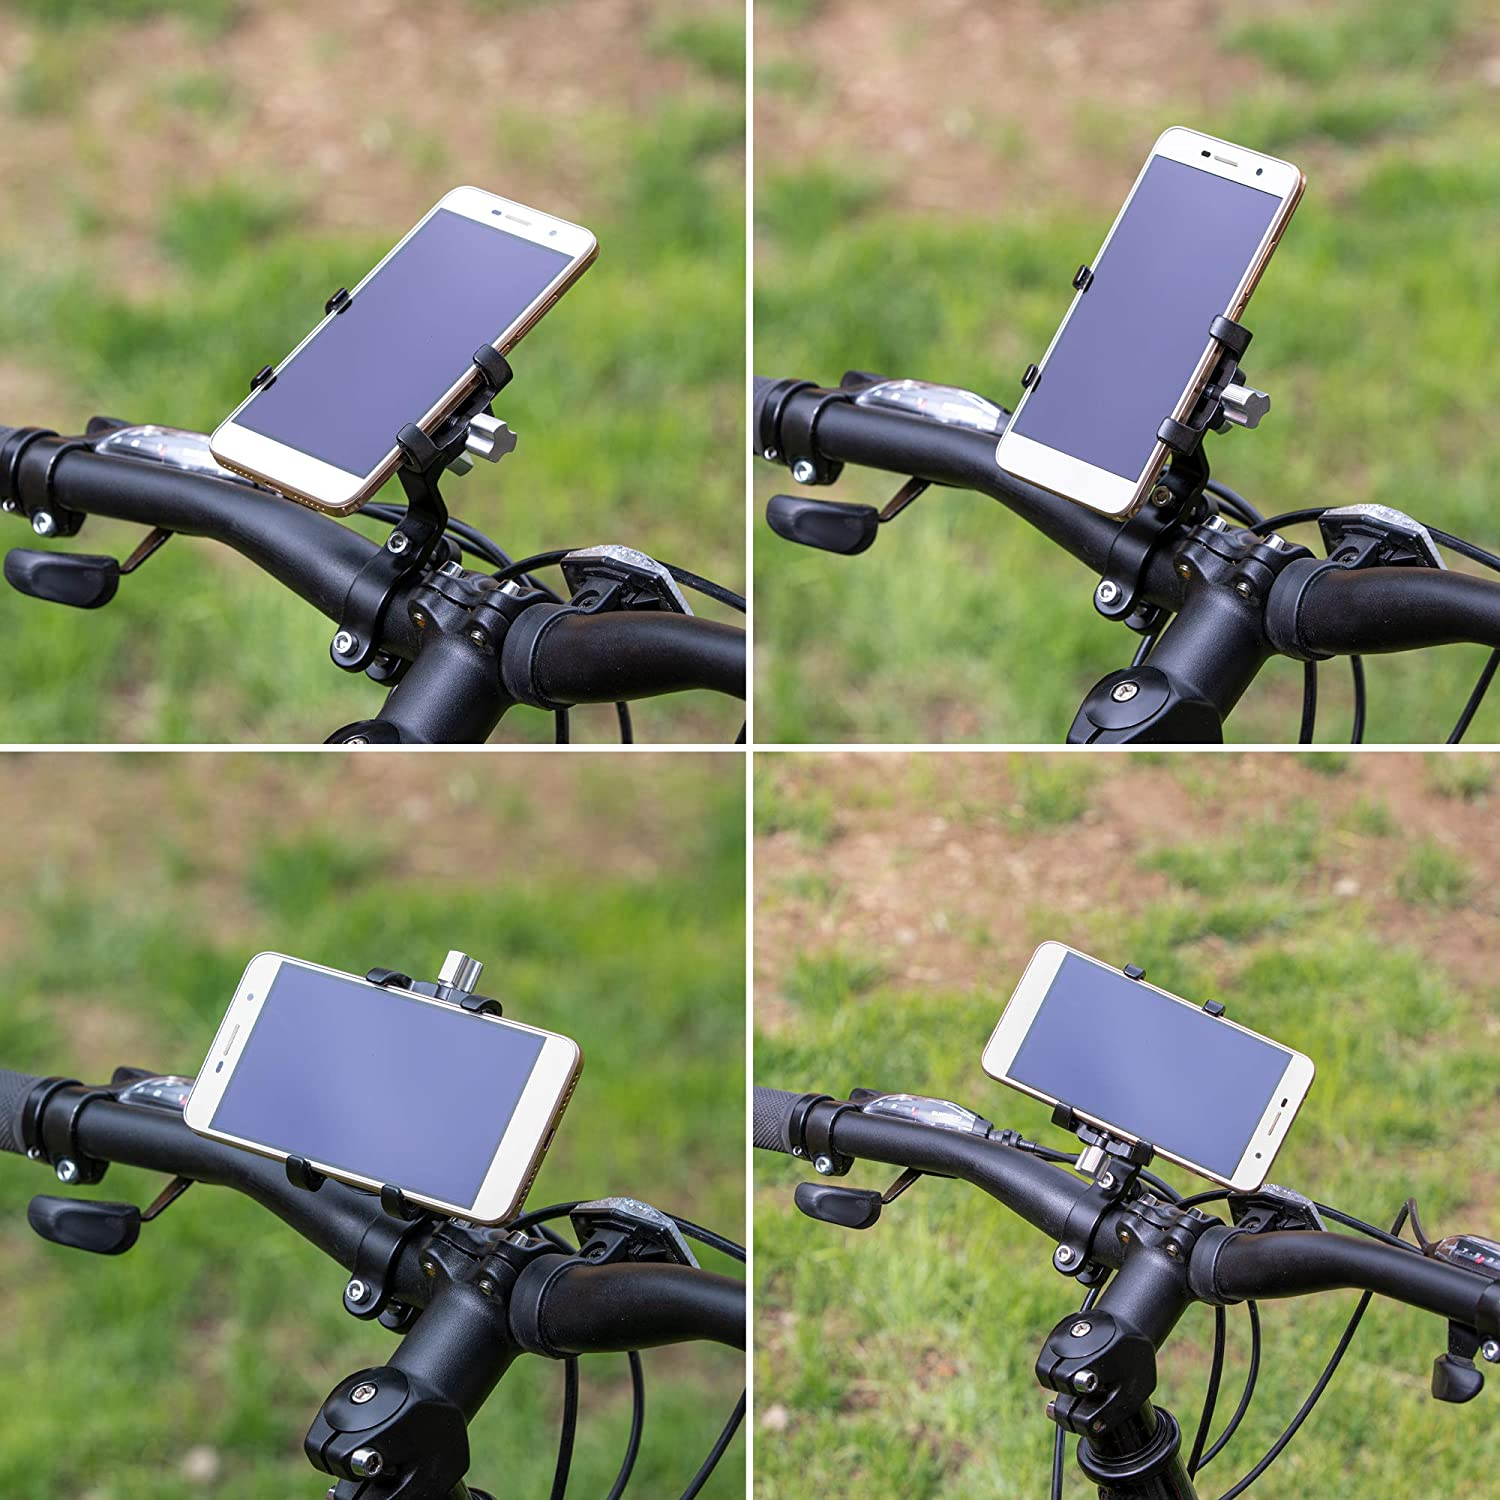 Bicycle /& Motorcycle Universal Phone Mount ,Aluminum Alloy Bike Phone Holder with 45/° Tilt and 360/° Rotation Full Angel Adjustment Fits for Most of Smartphones